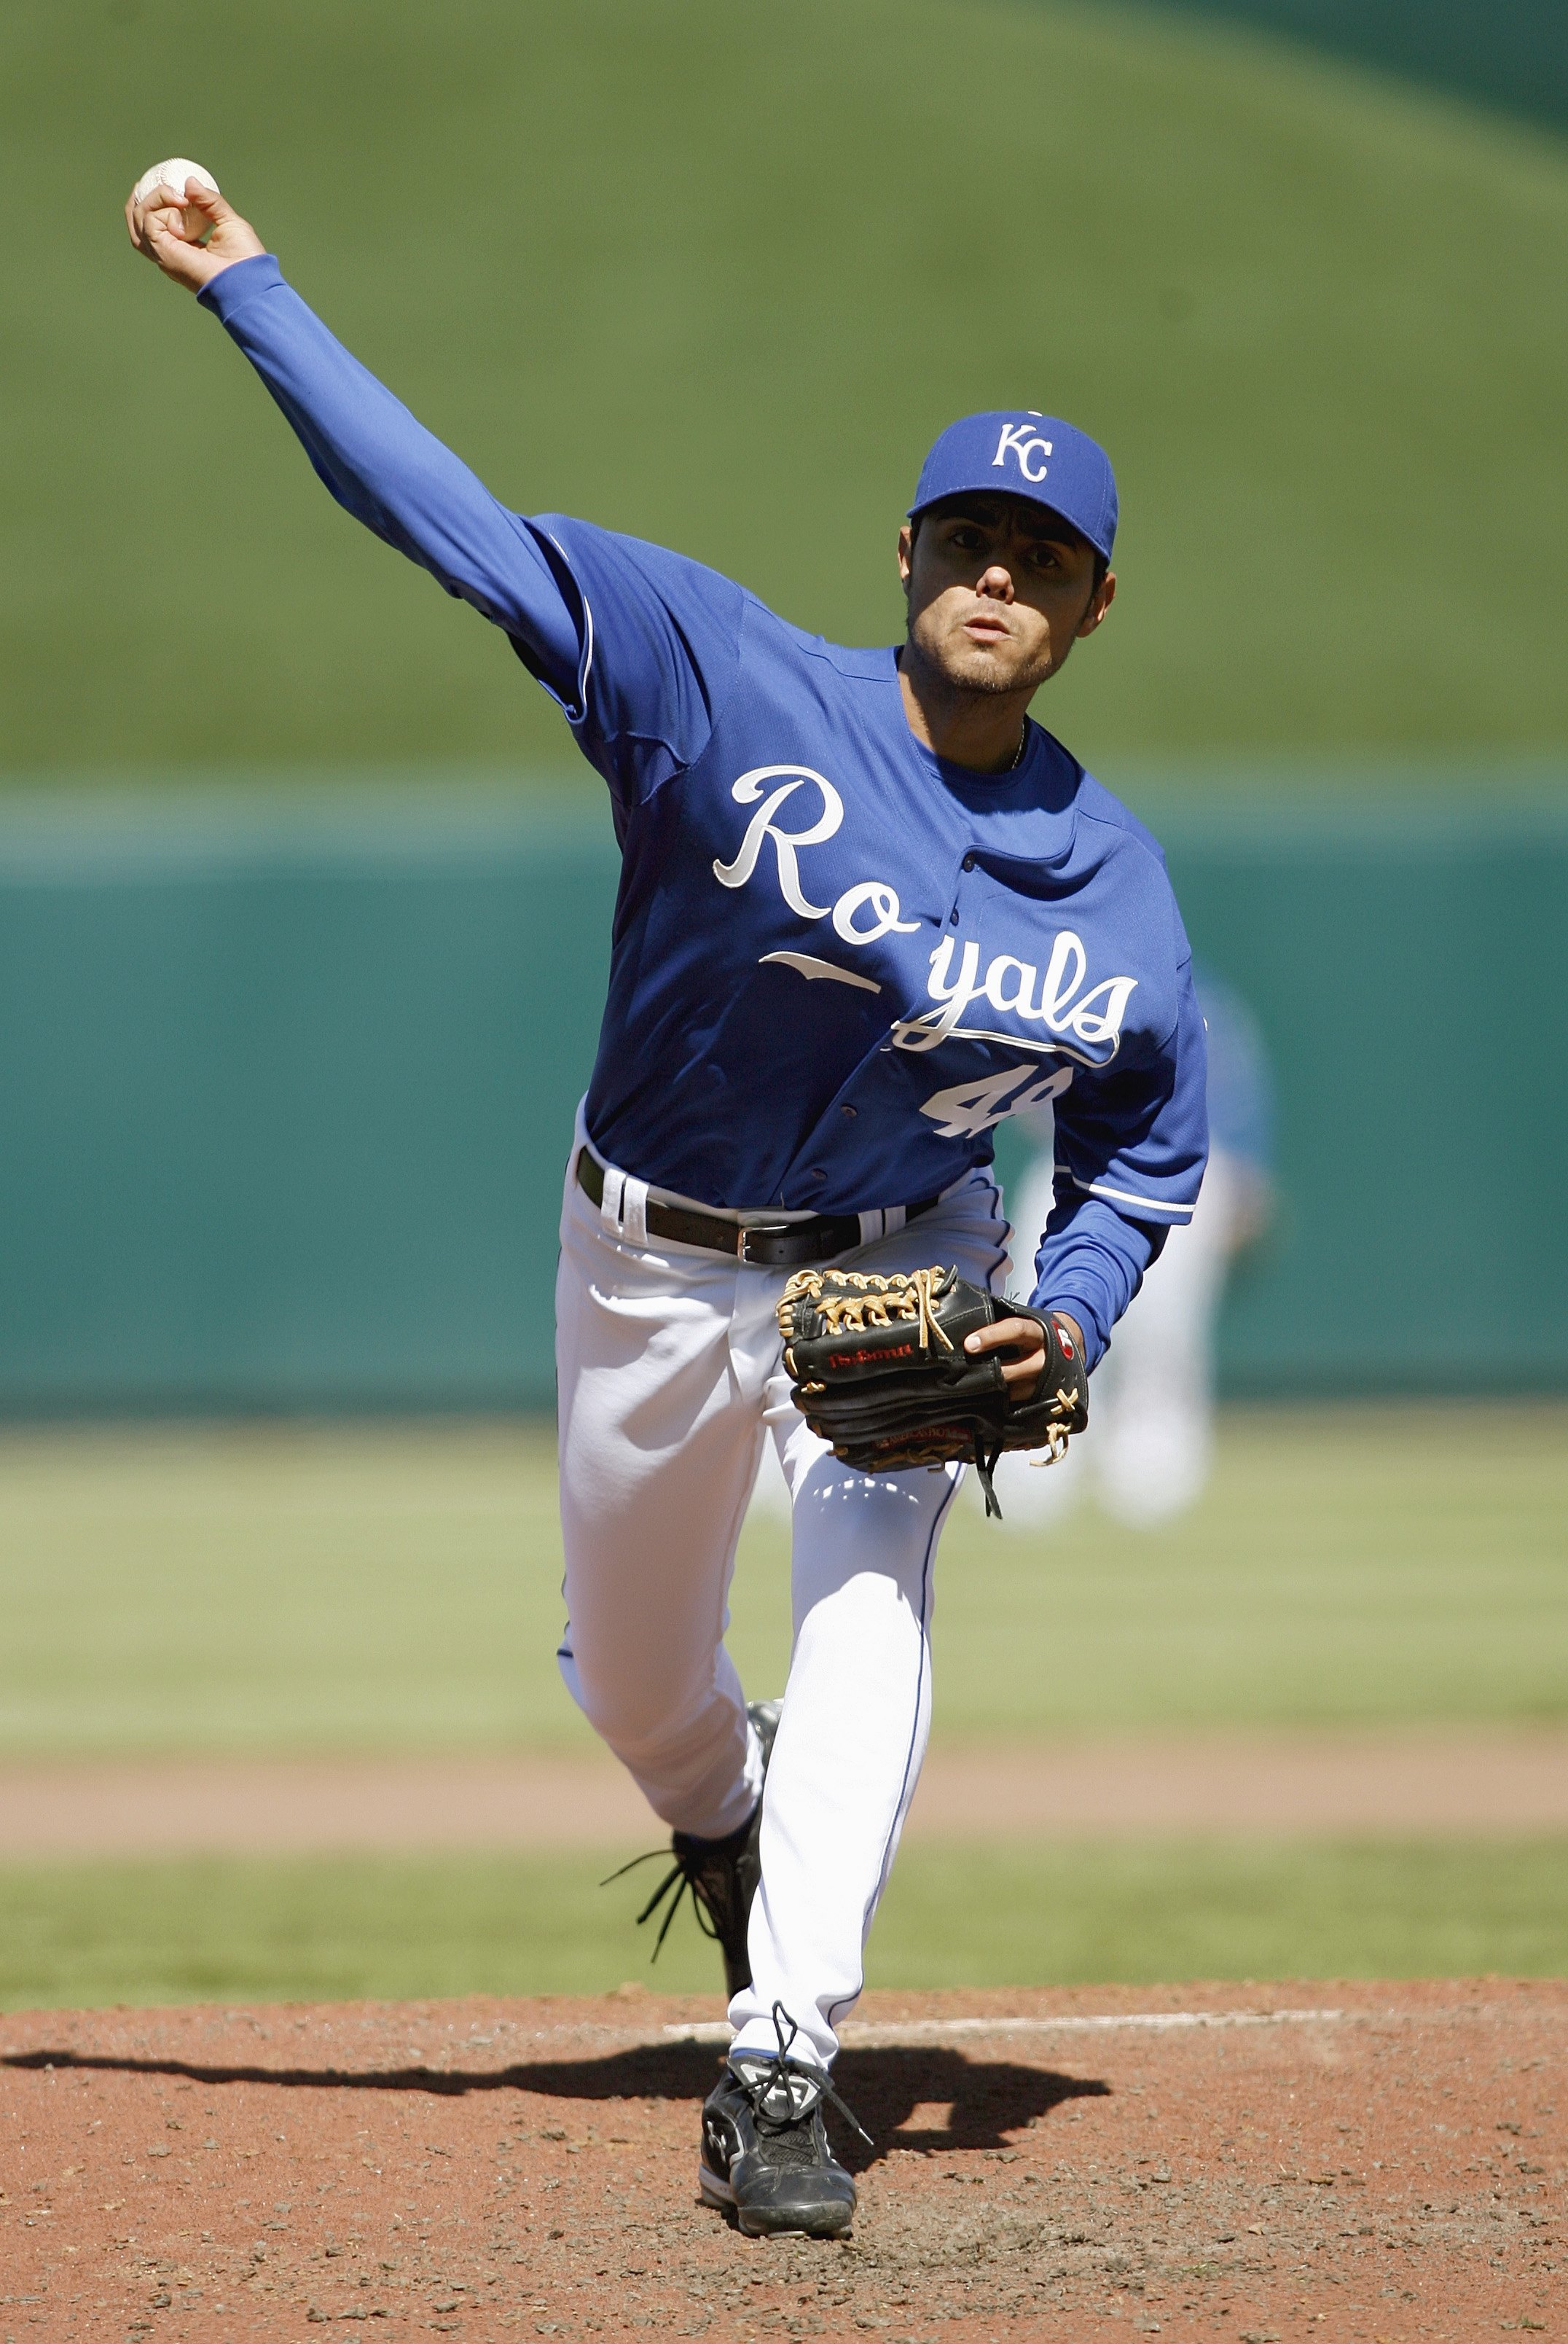 KANSAS CITY, MO - APRIL 8: Joakim Soria #48 of the Kansas City Royals delivers the pitch during the game against the Detroit Tigers at Kauffman Stadium April 8, 2007 in Kansas City, Missouri. (Photo by G. Newman Lowrance/Getty Images)